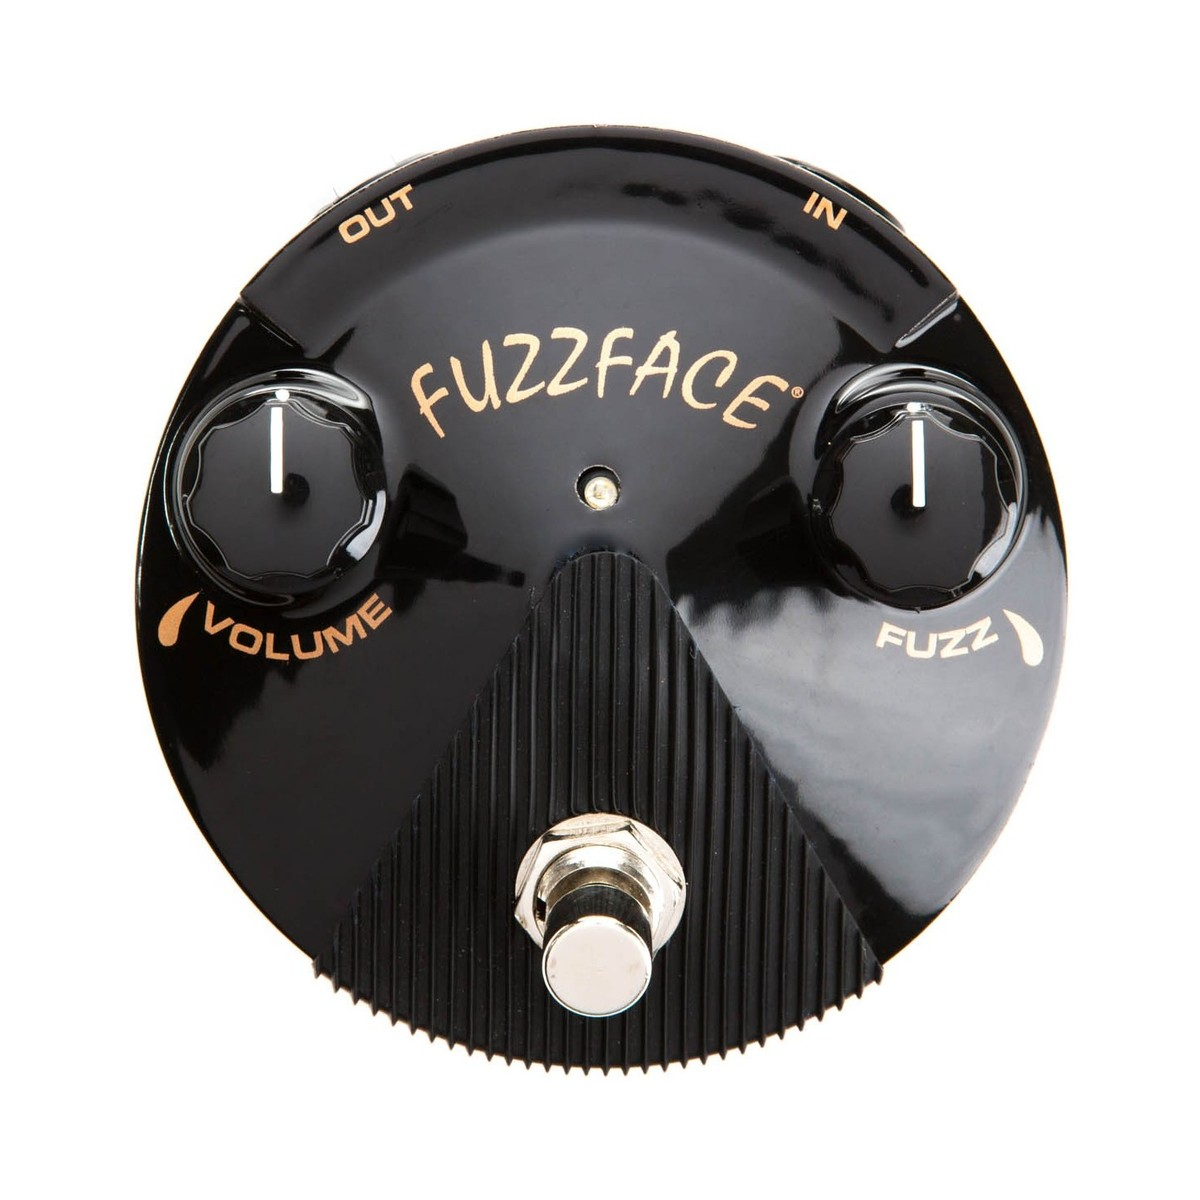 Dunlop Germanium Fuzz Face Mini Red Guitar Effects Pedal FFM2 OPEN BOX